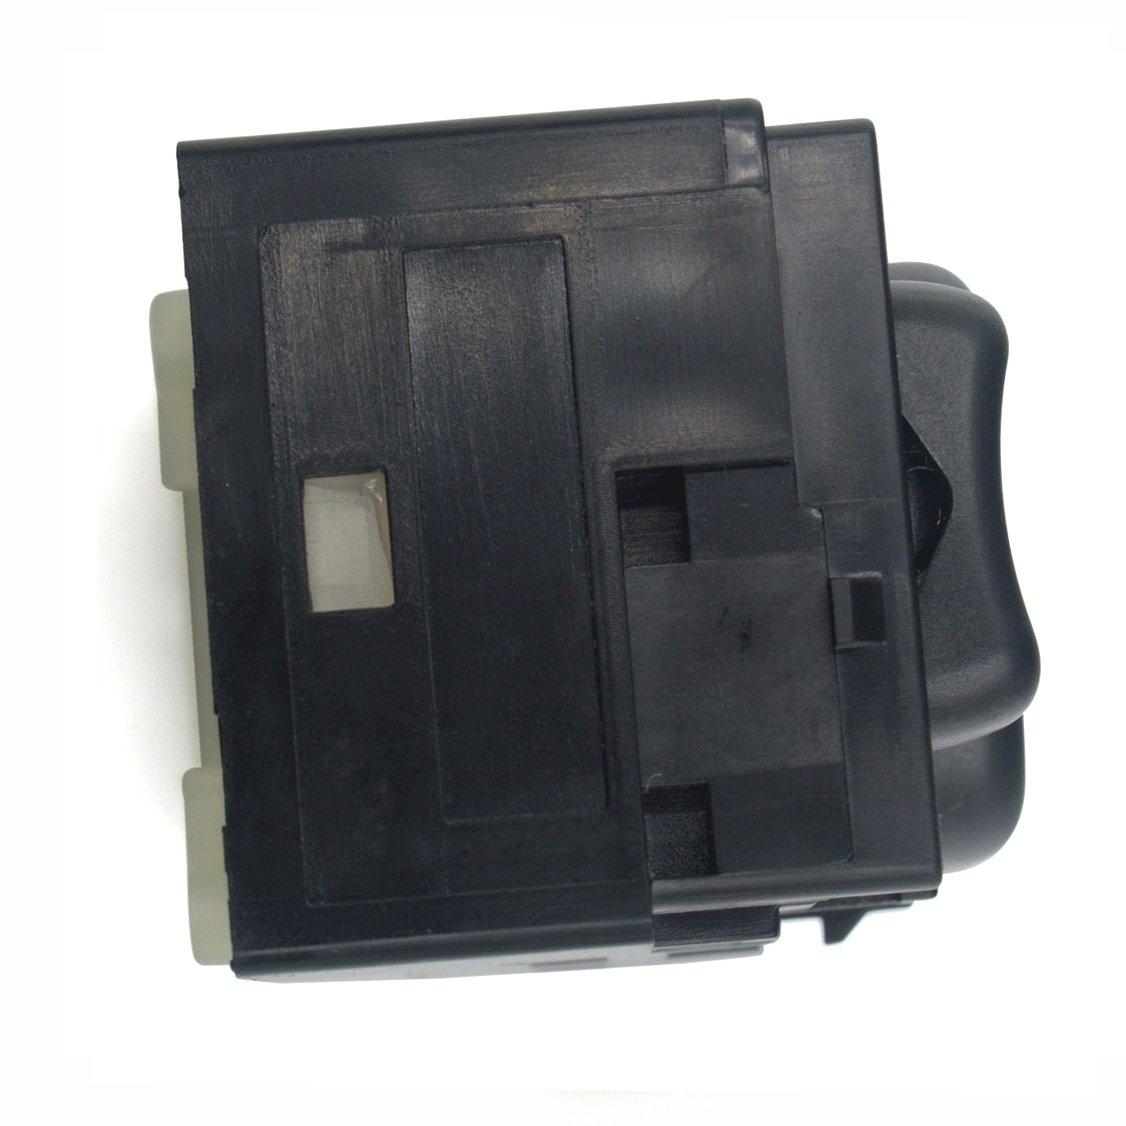 Forning TY-6208 Remote Mirror Switch Fits for Toyota Pontiac 84872-52030